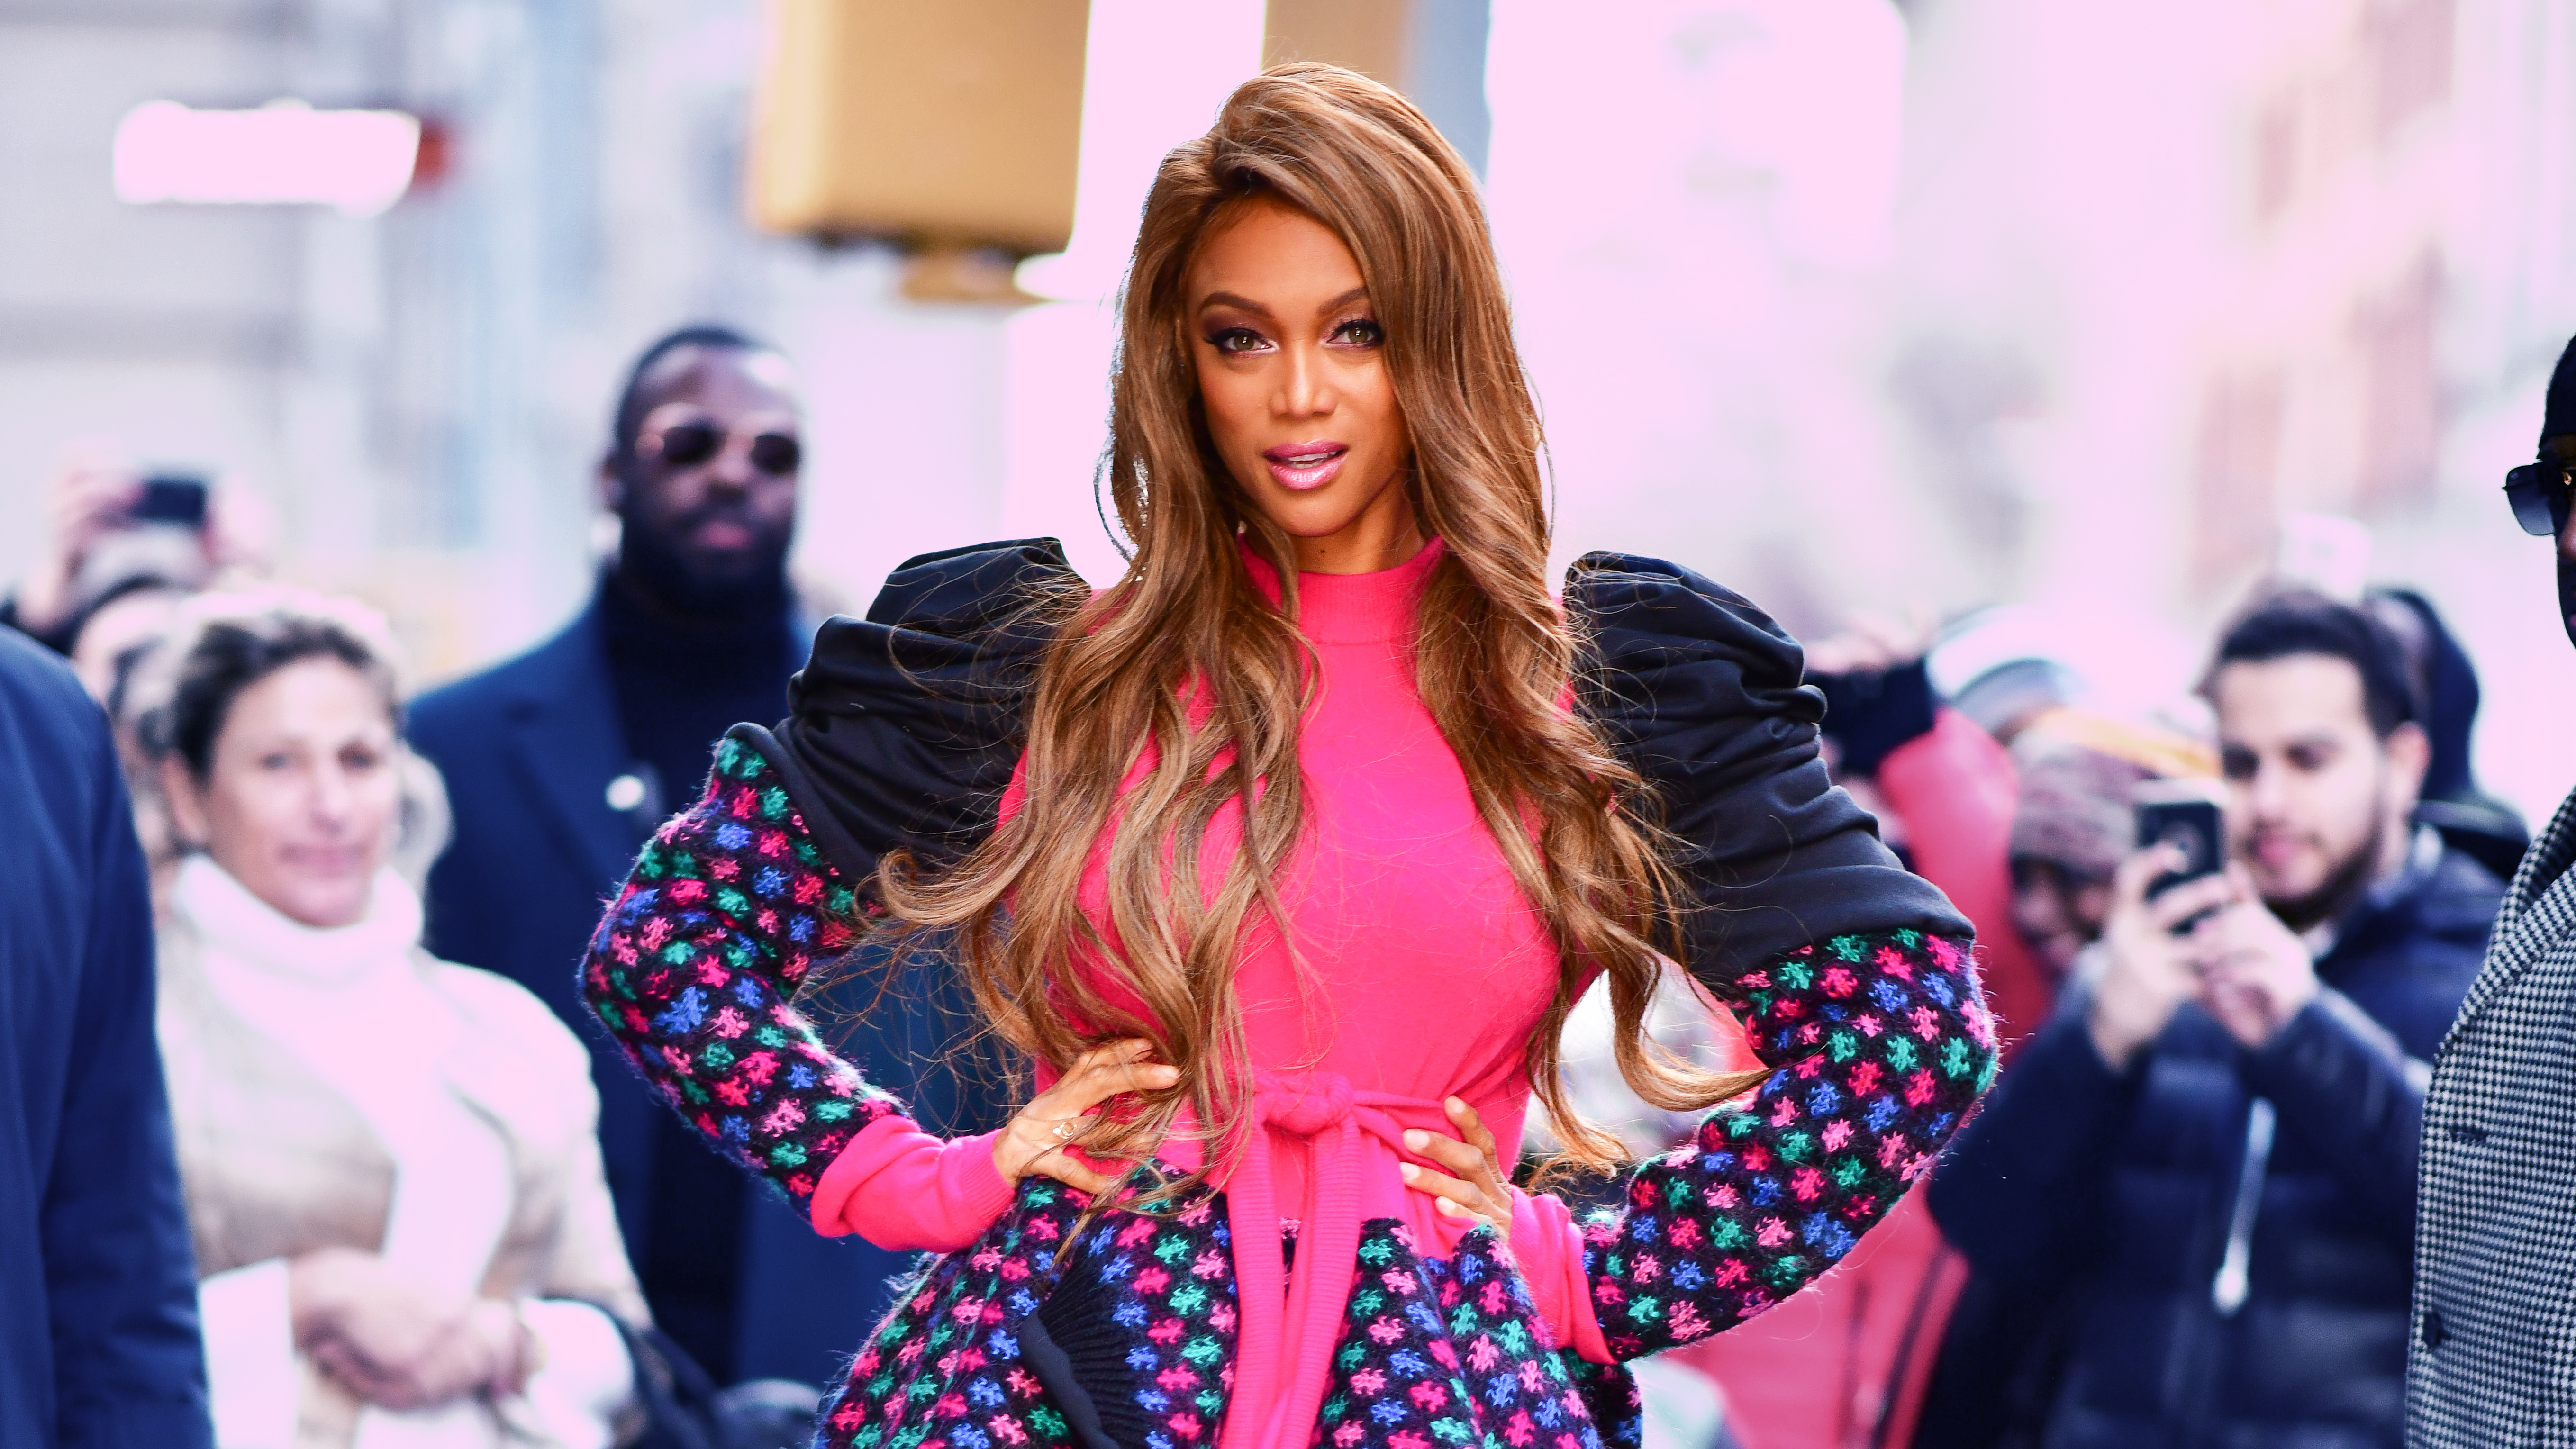 16 ANTM-Themed Attractions We're Dying to See at Tyra Banks' 'Modelland' Theme Park